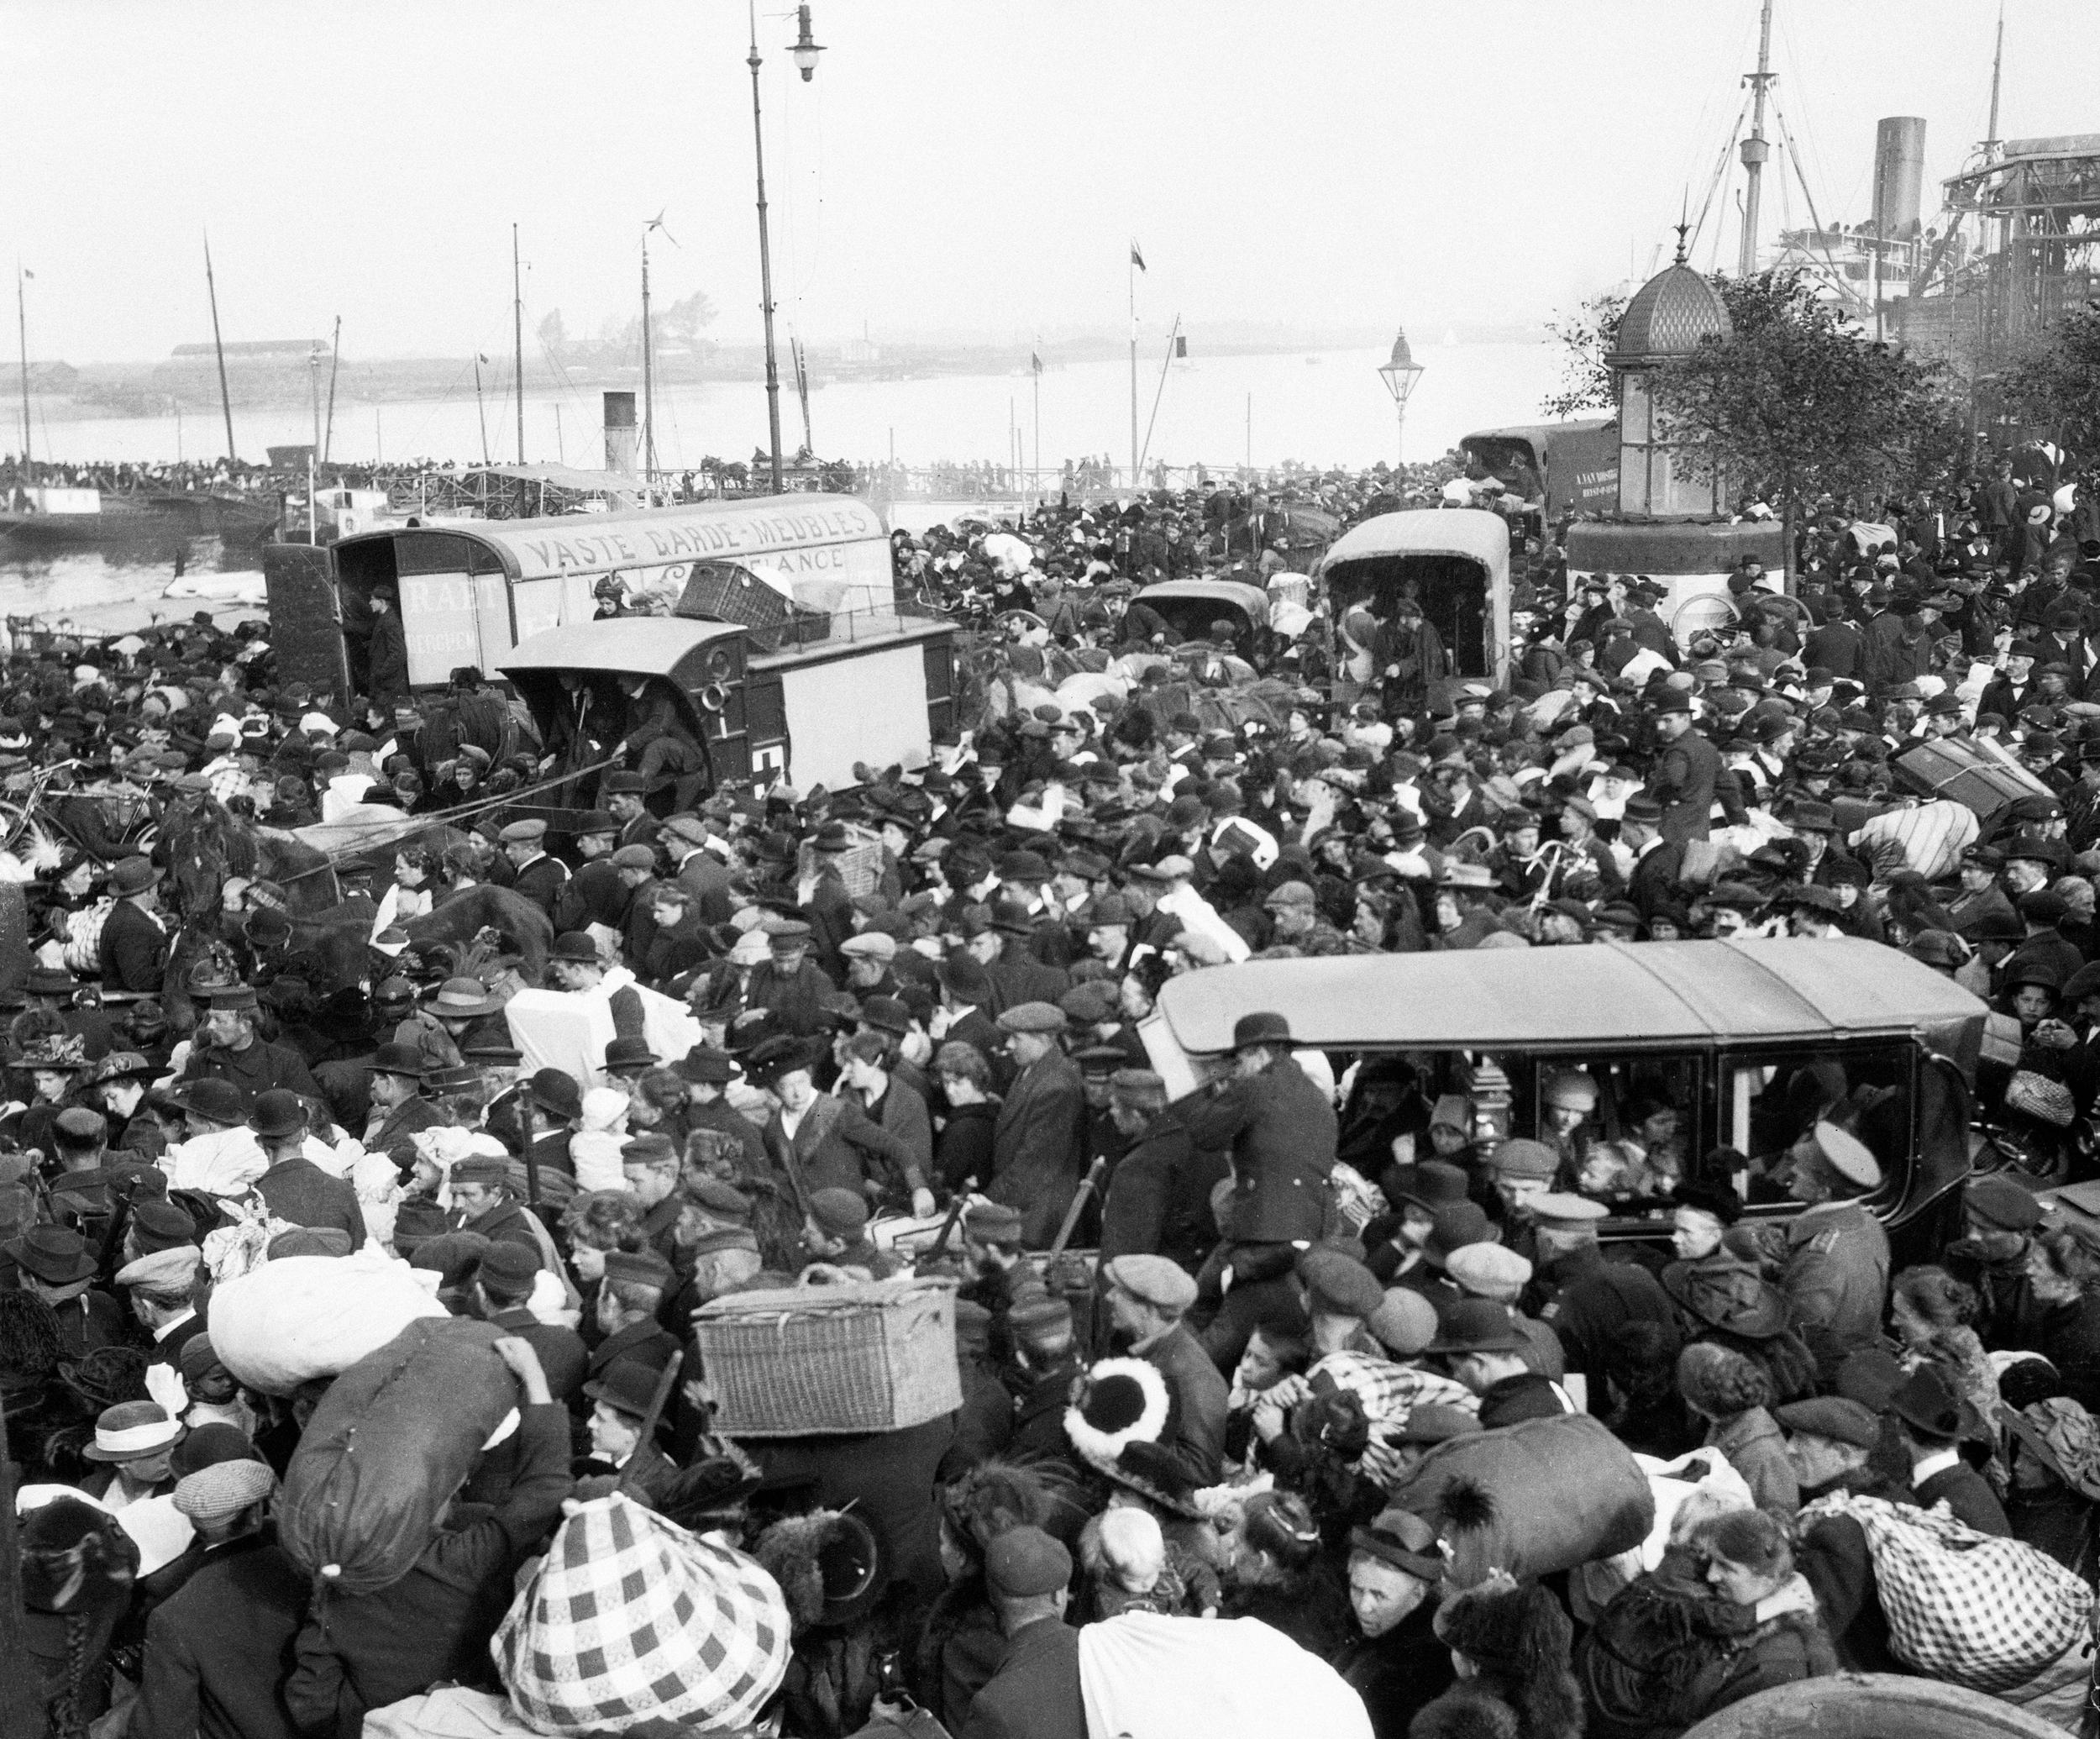 The evacuation at Ghent